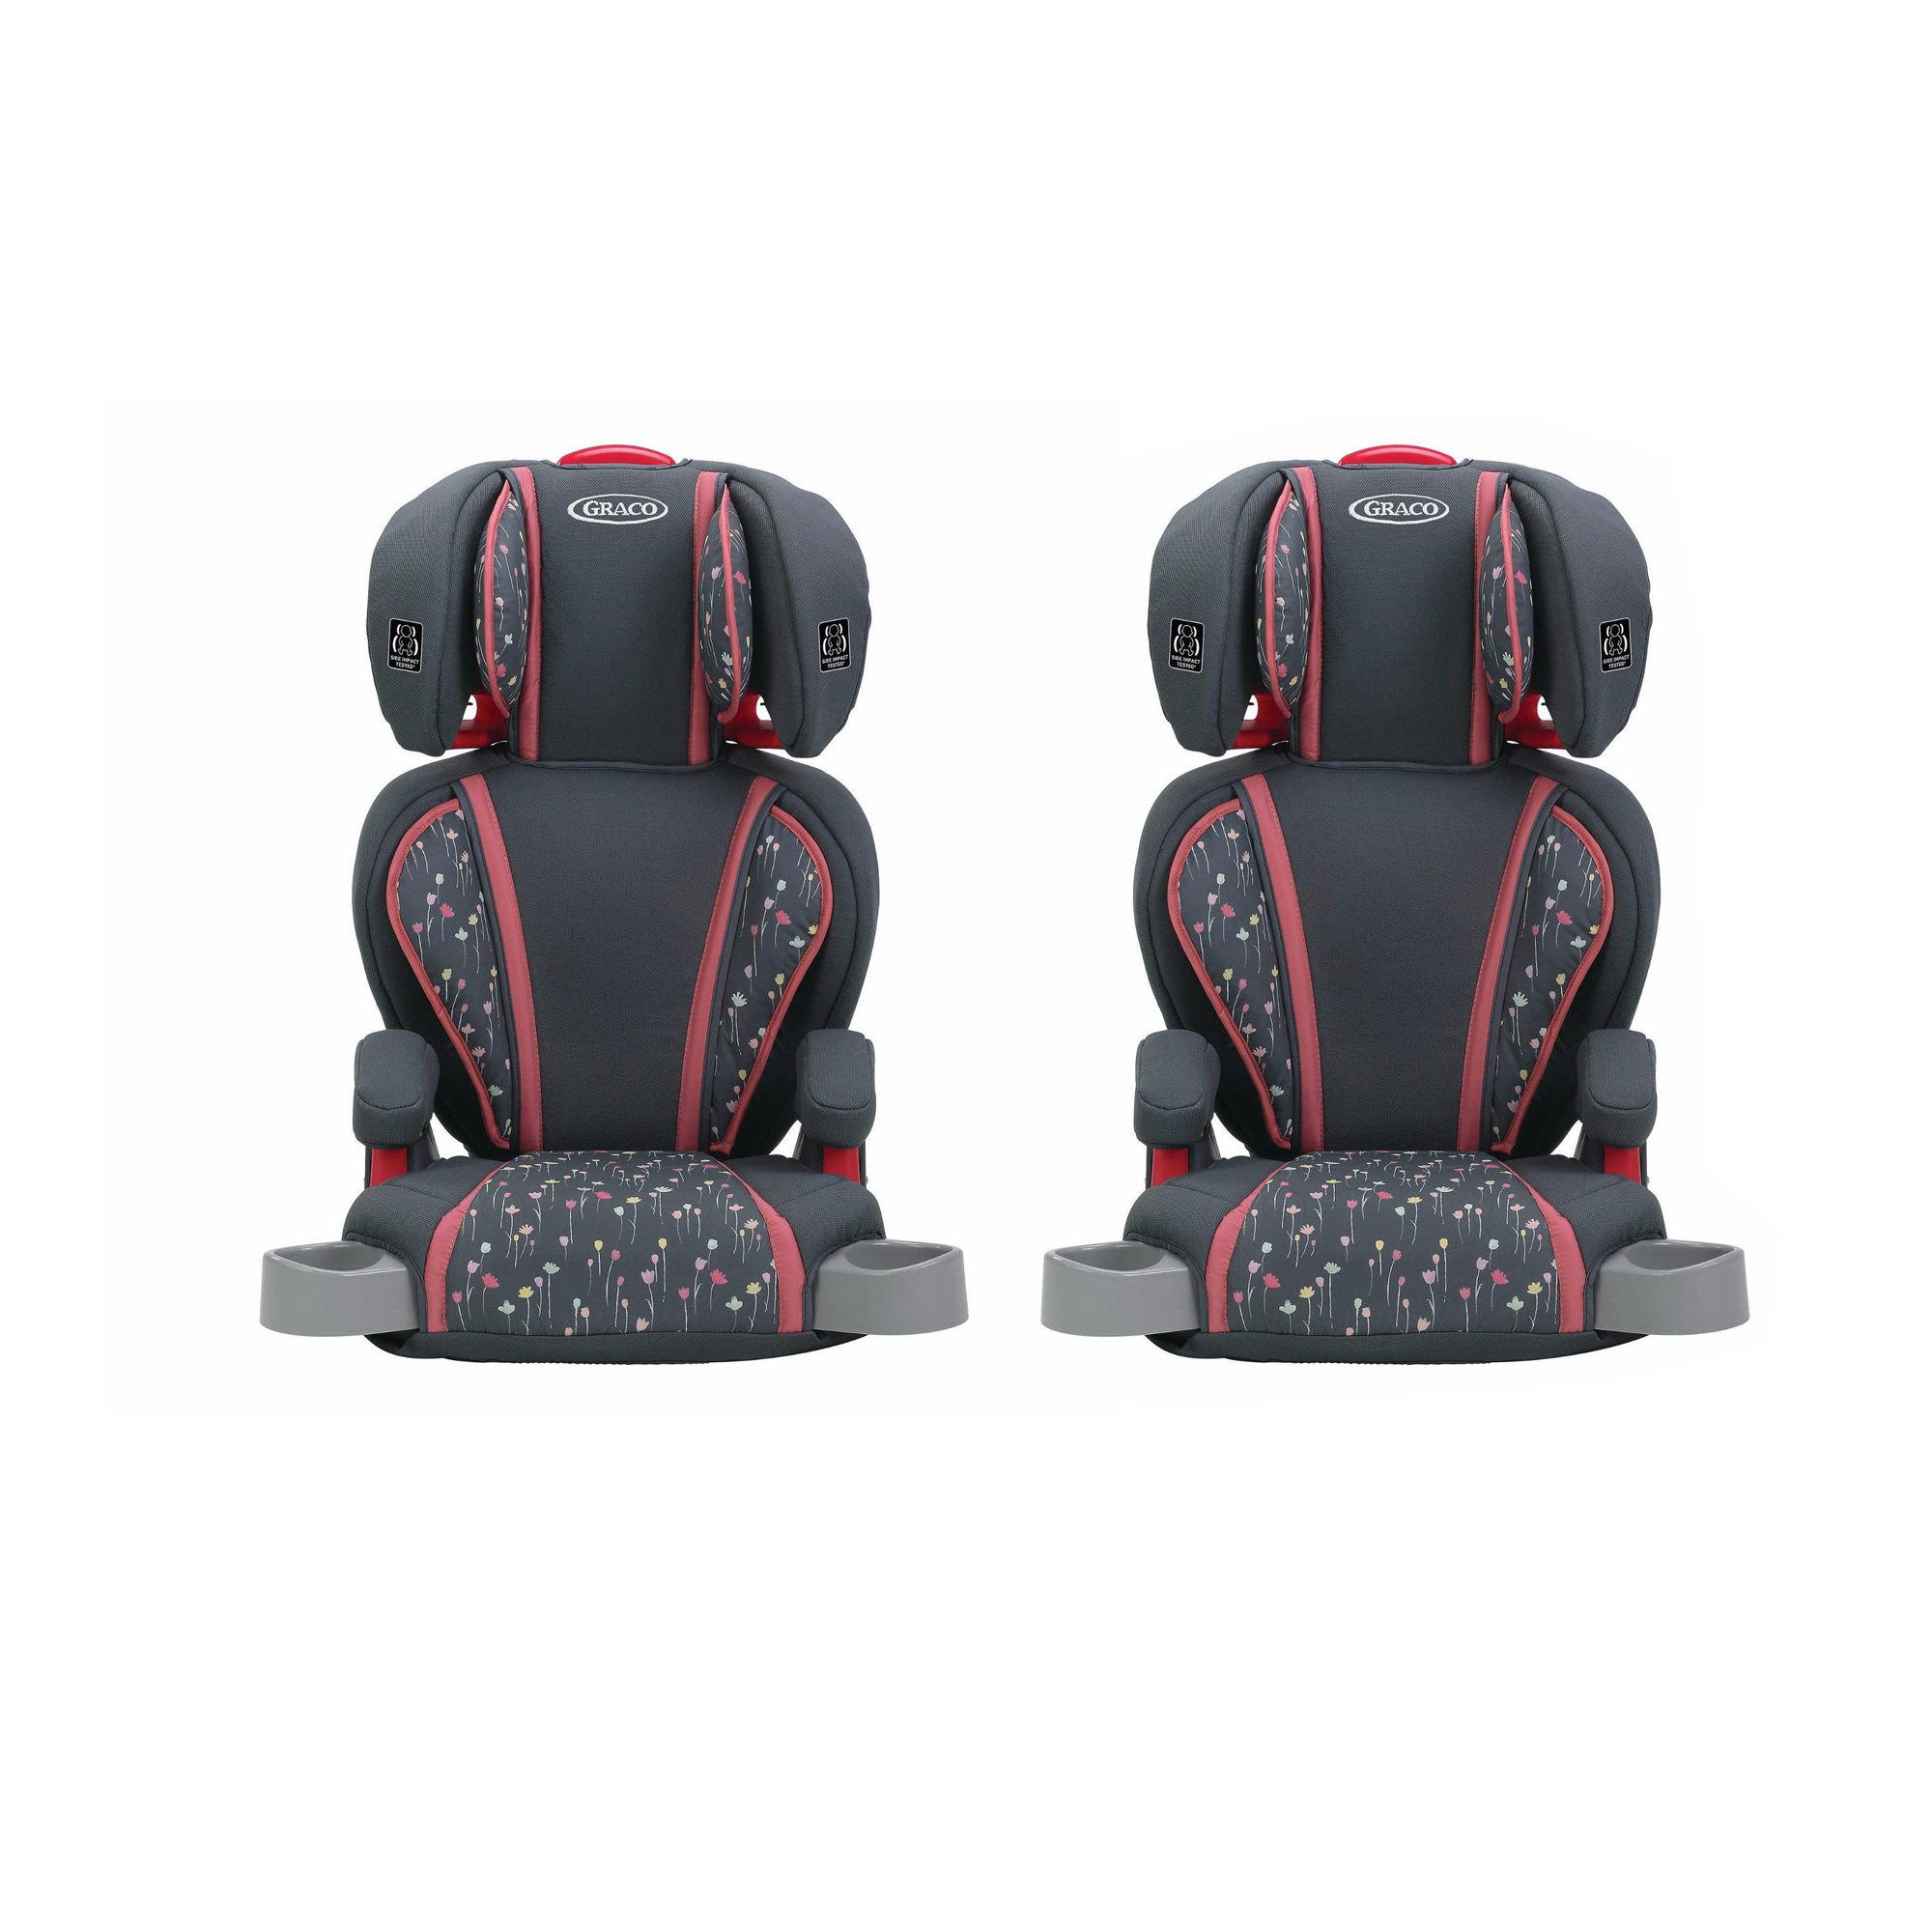 Super Details About Graco Highback Turbobooster Height Adjustable Childrens Car Seat Alma 2 Pack Alphanode Cool Chair Designs And Ideas Alphanodeonline